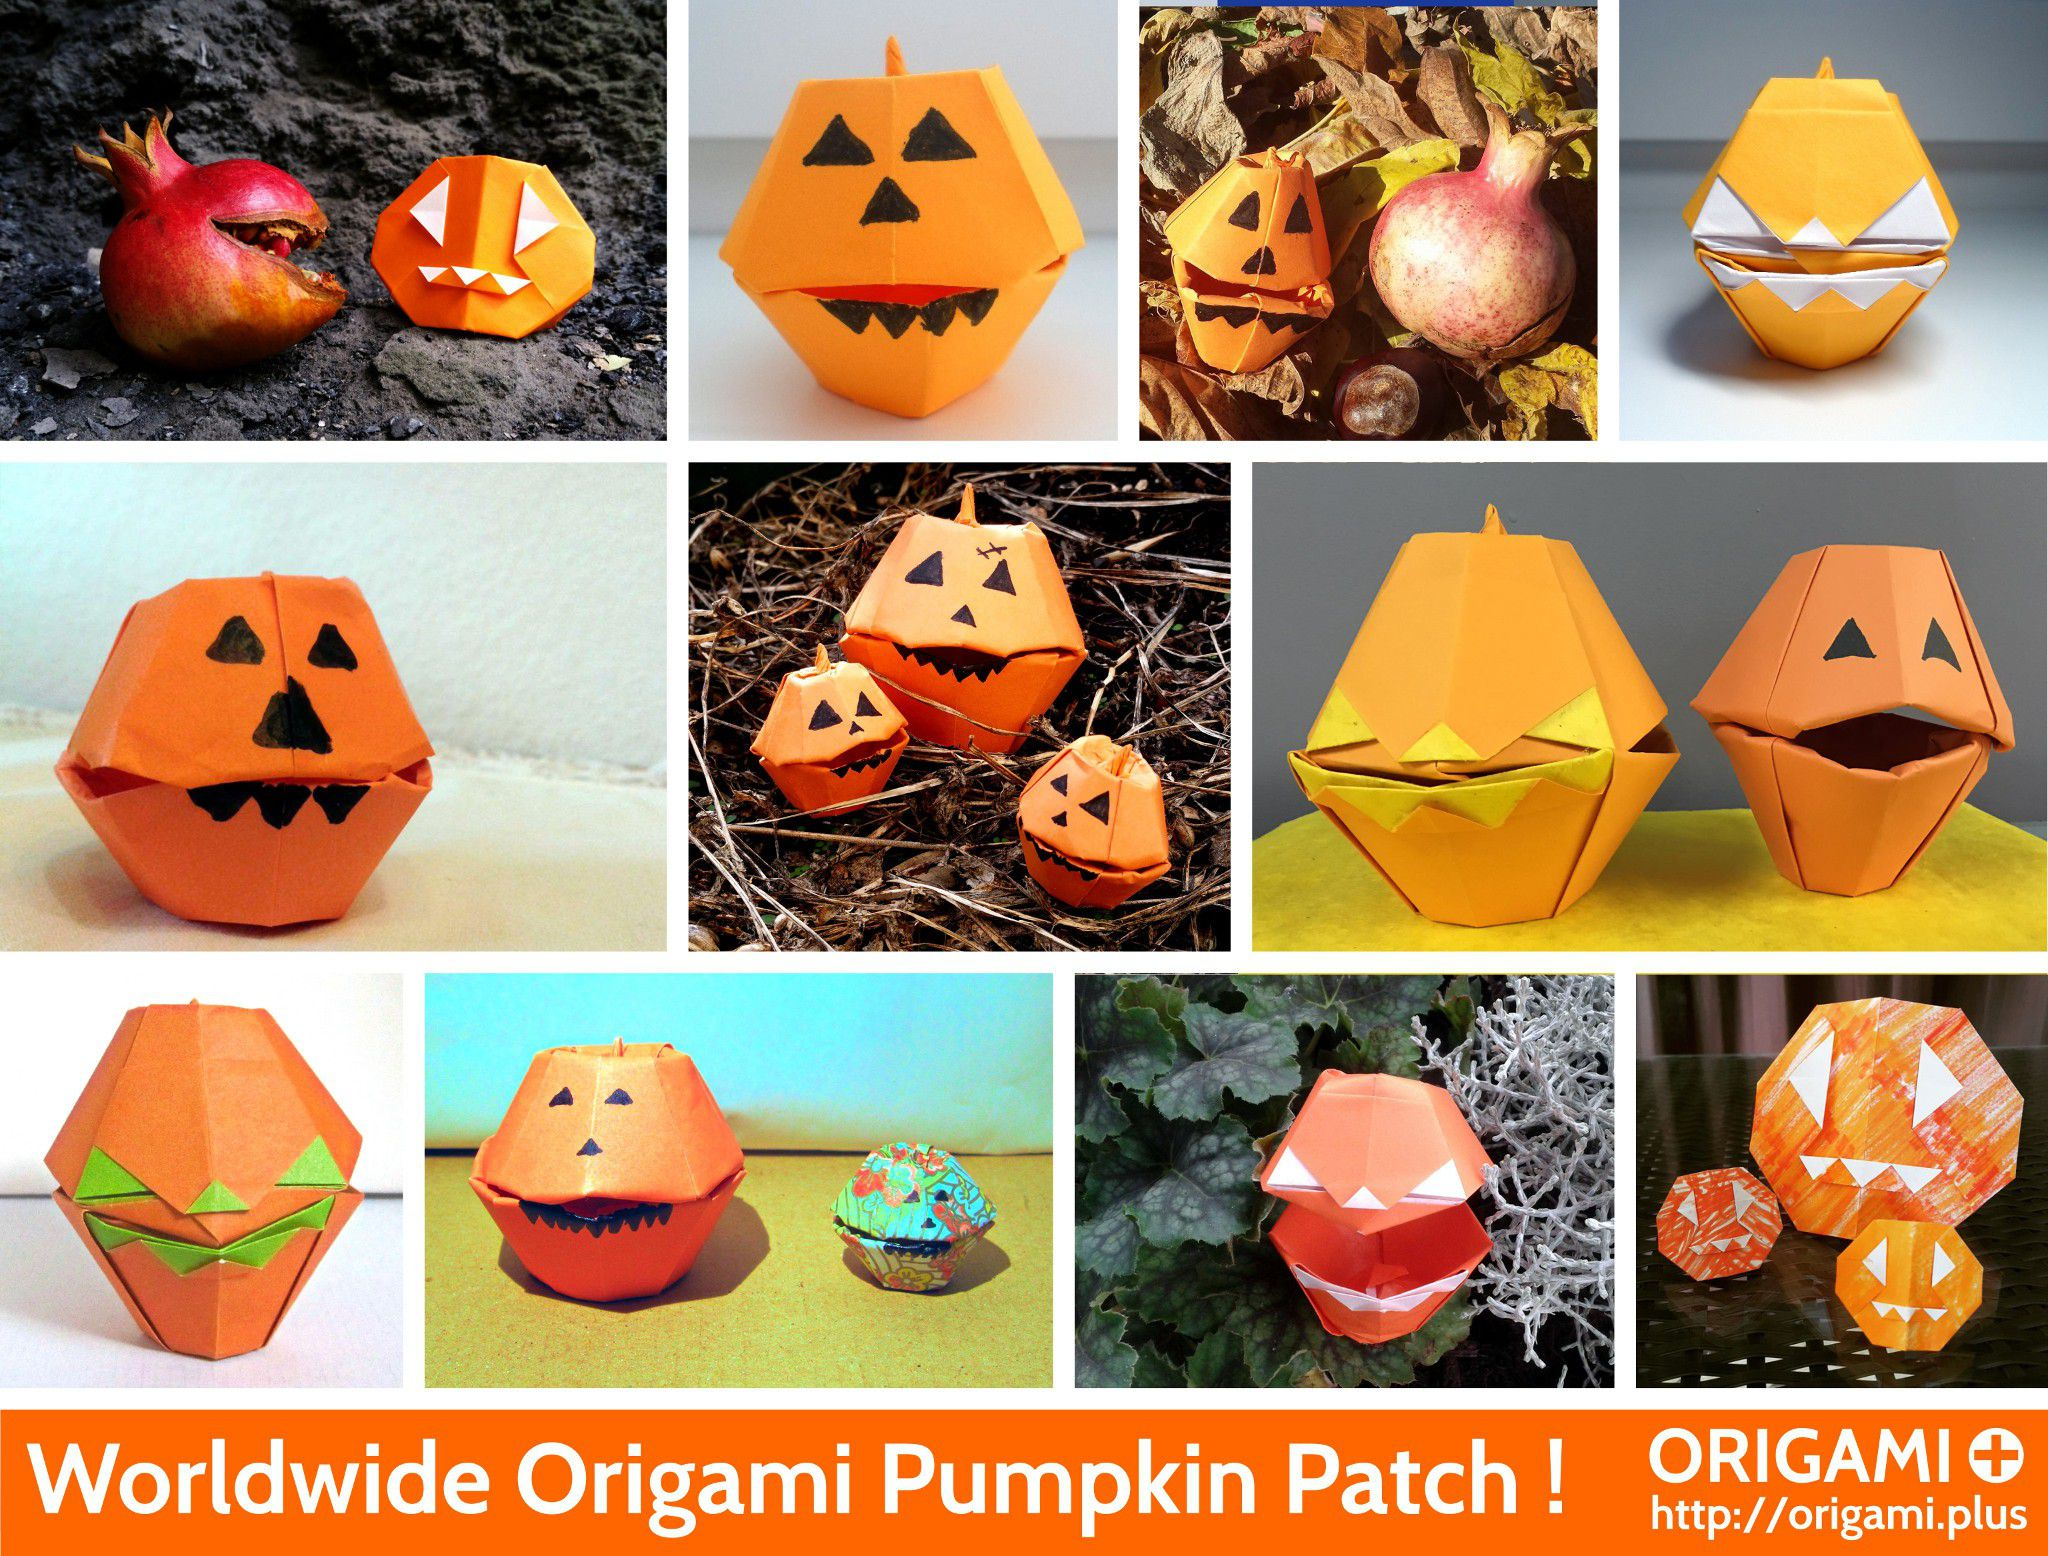 Origami Pumpkin Patch